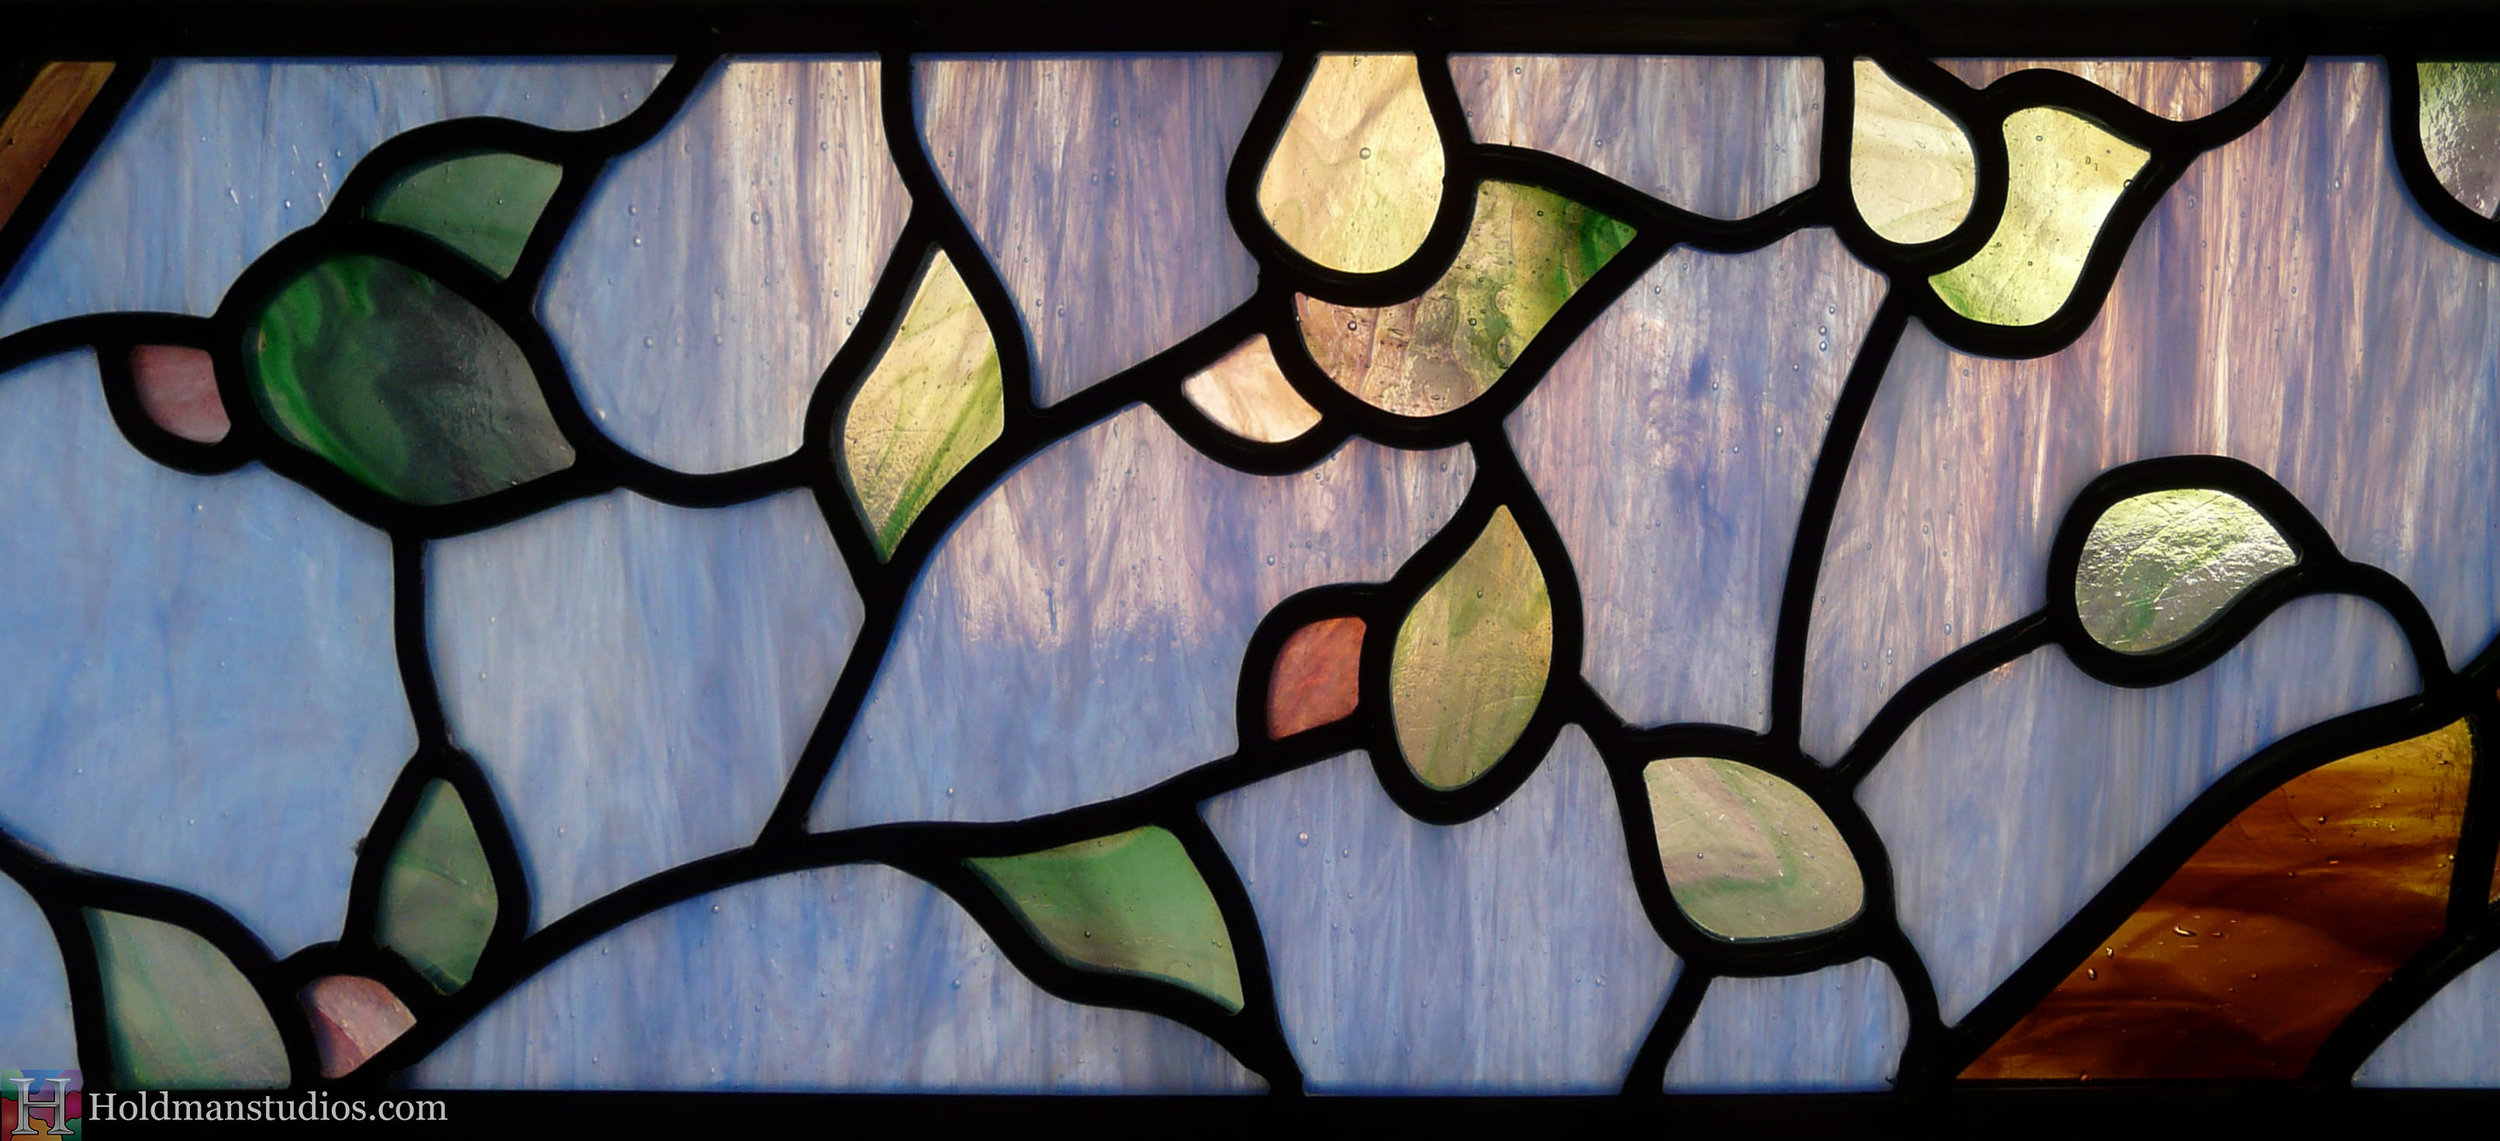 Holdman-Studios-Stained-Glass-Sidelight-Window-Apen-Tree-River-Top-Crop.jpg